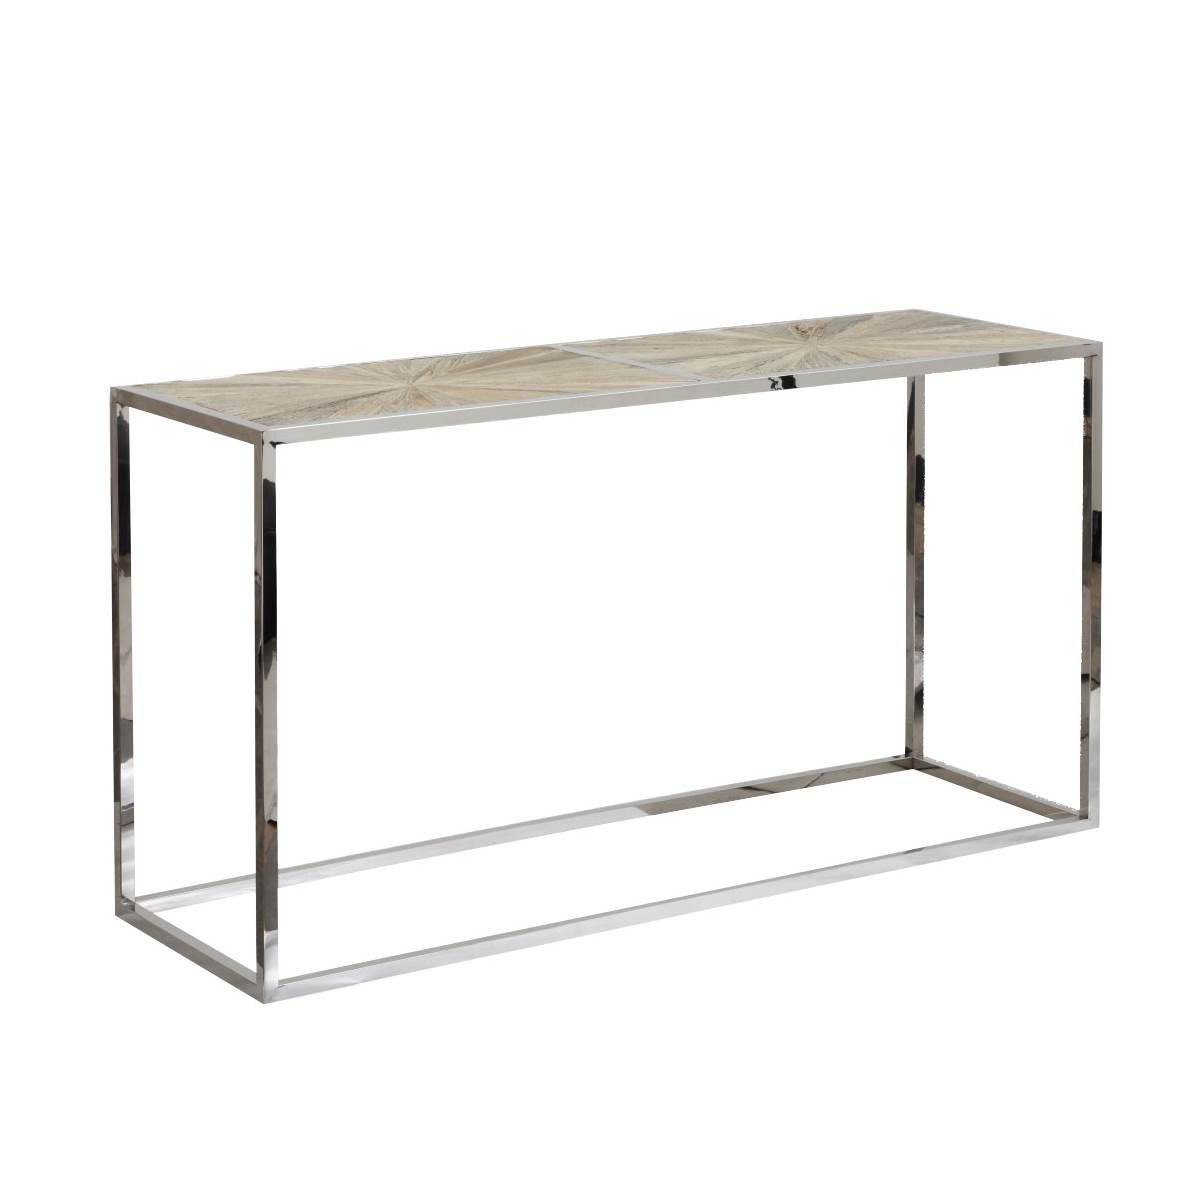 Parquet Console Table | Marshall | Pinterest Within Parsons Concrete Top & Brass Base 48x16 Console Tables (View 10 of 30)